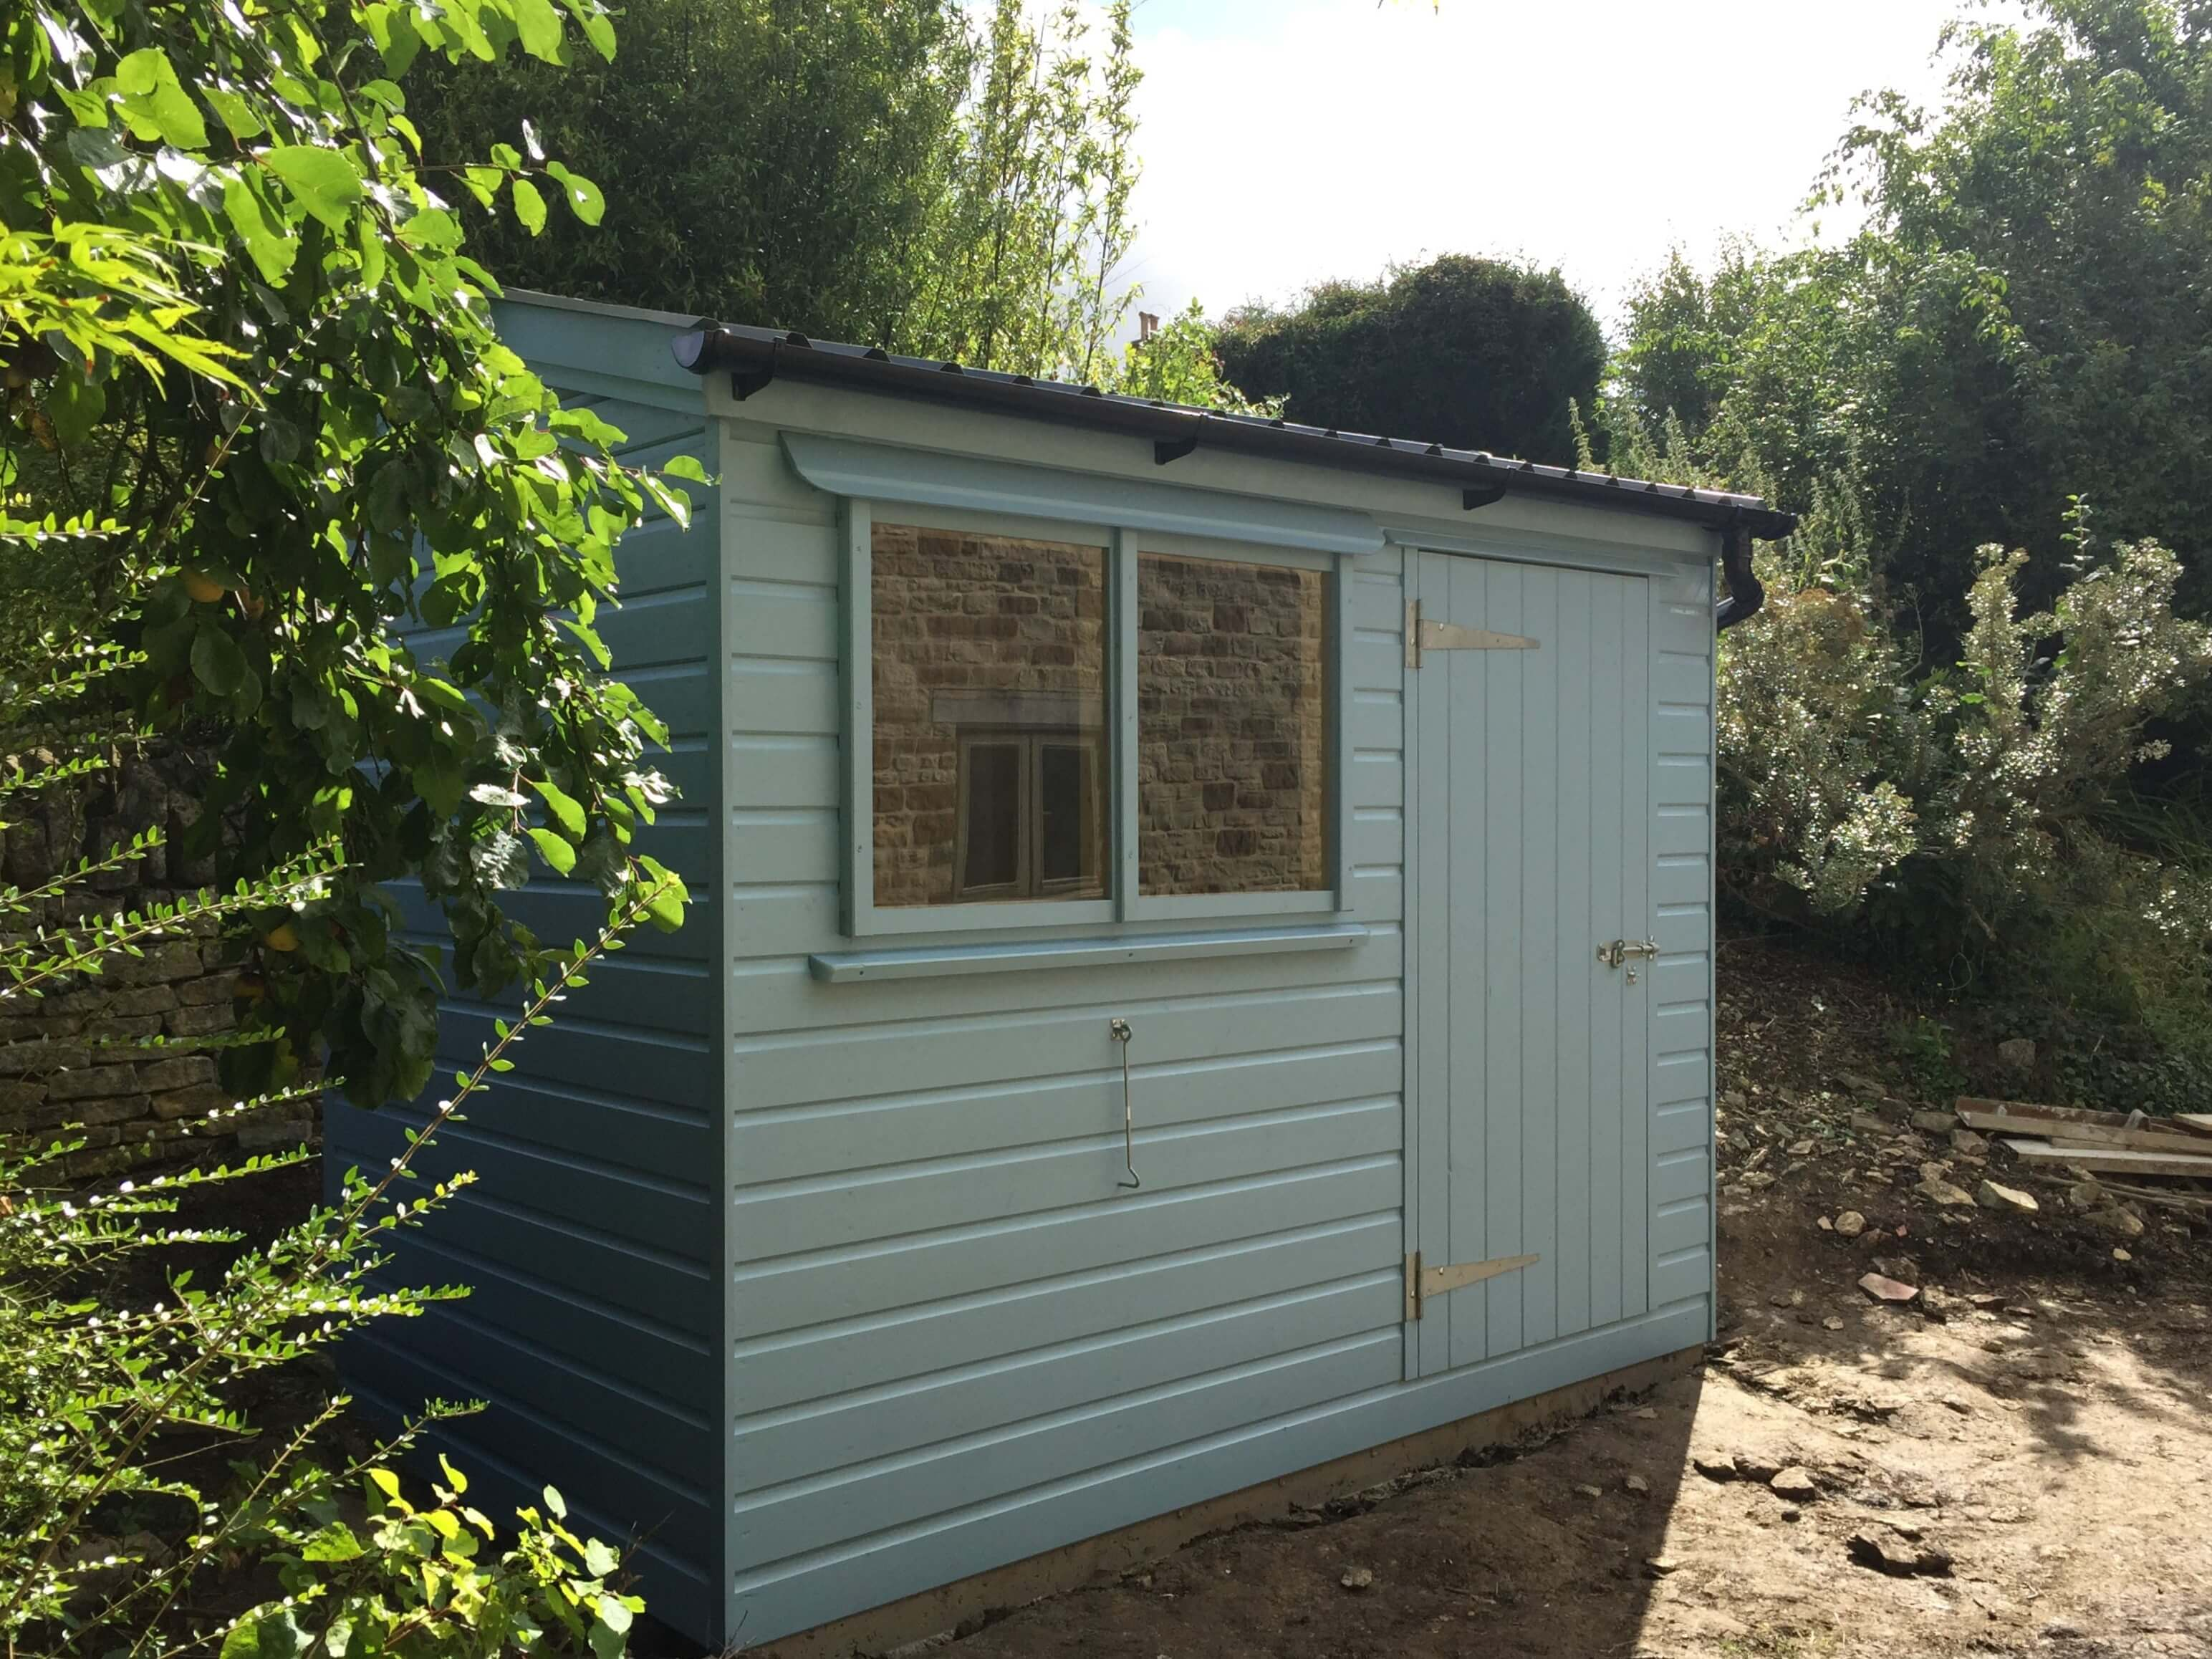 Painted garden shed lean to roof